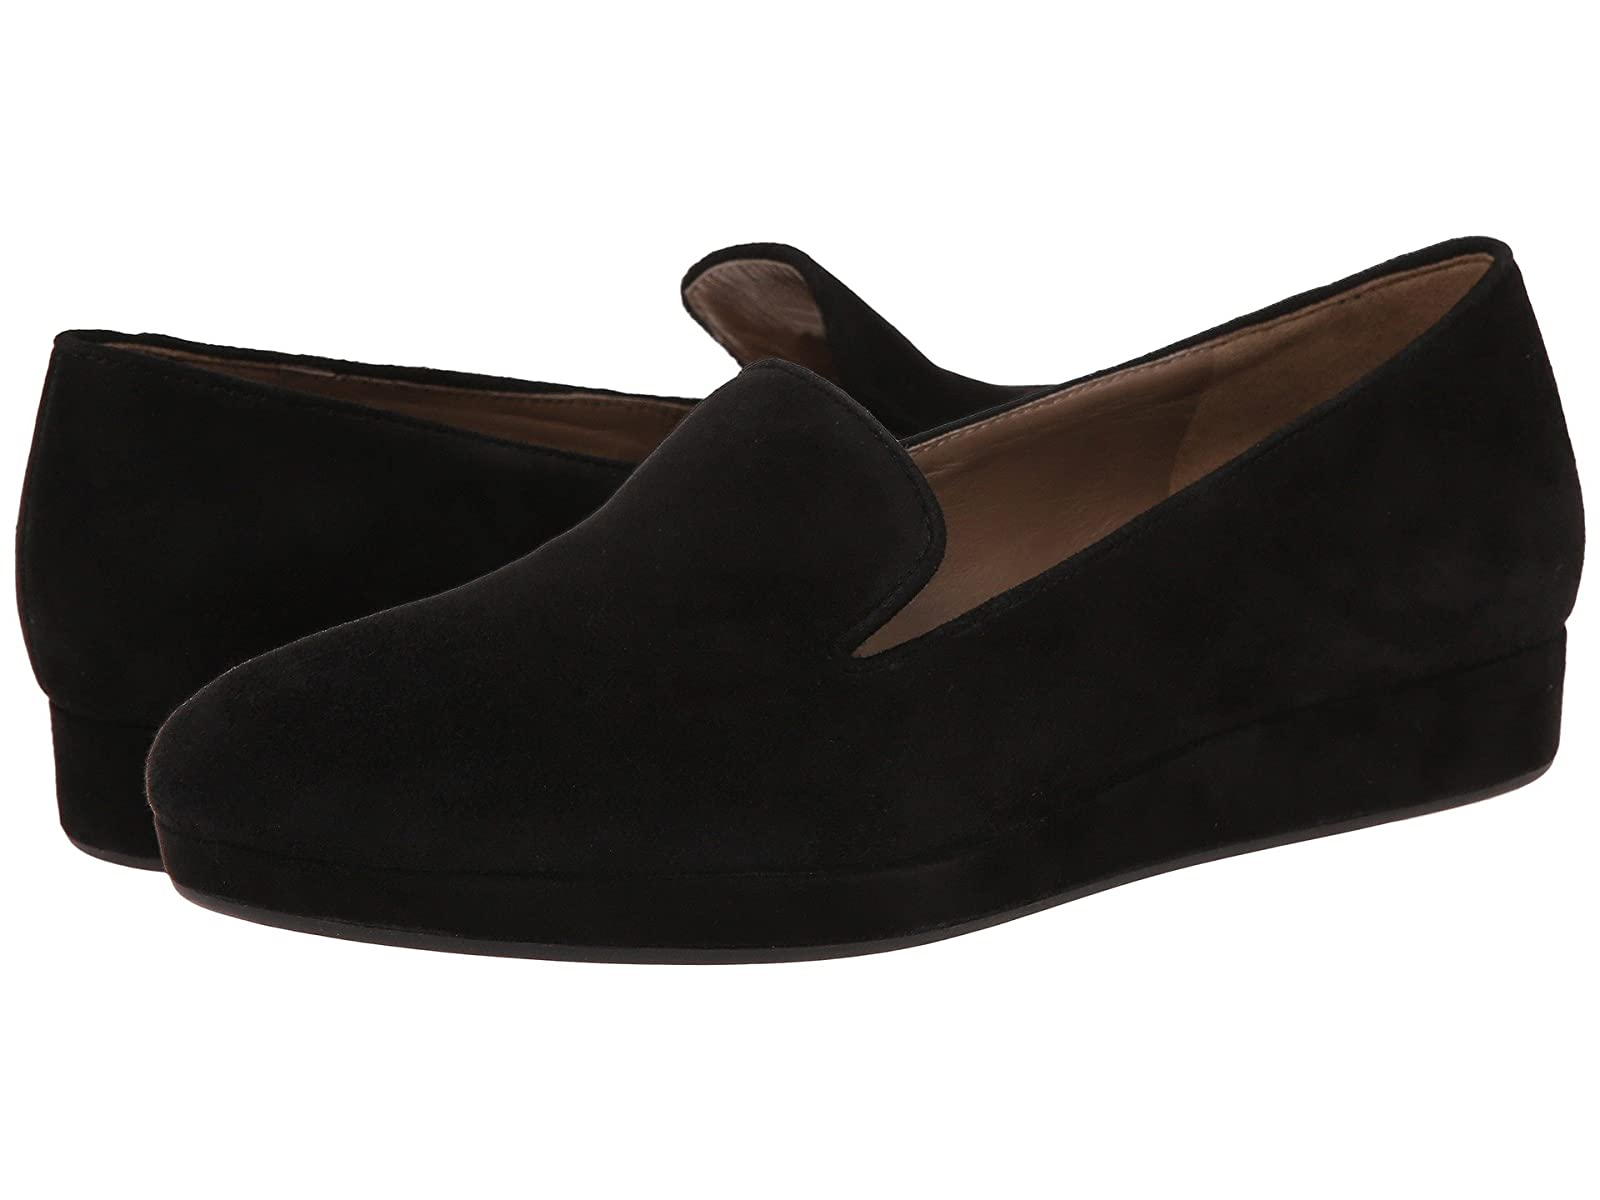 ECCO Auckland LoaferCheap and distinctive eye-catching shoes